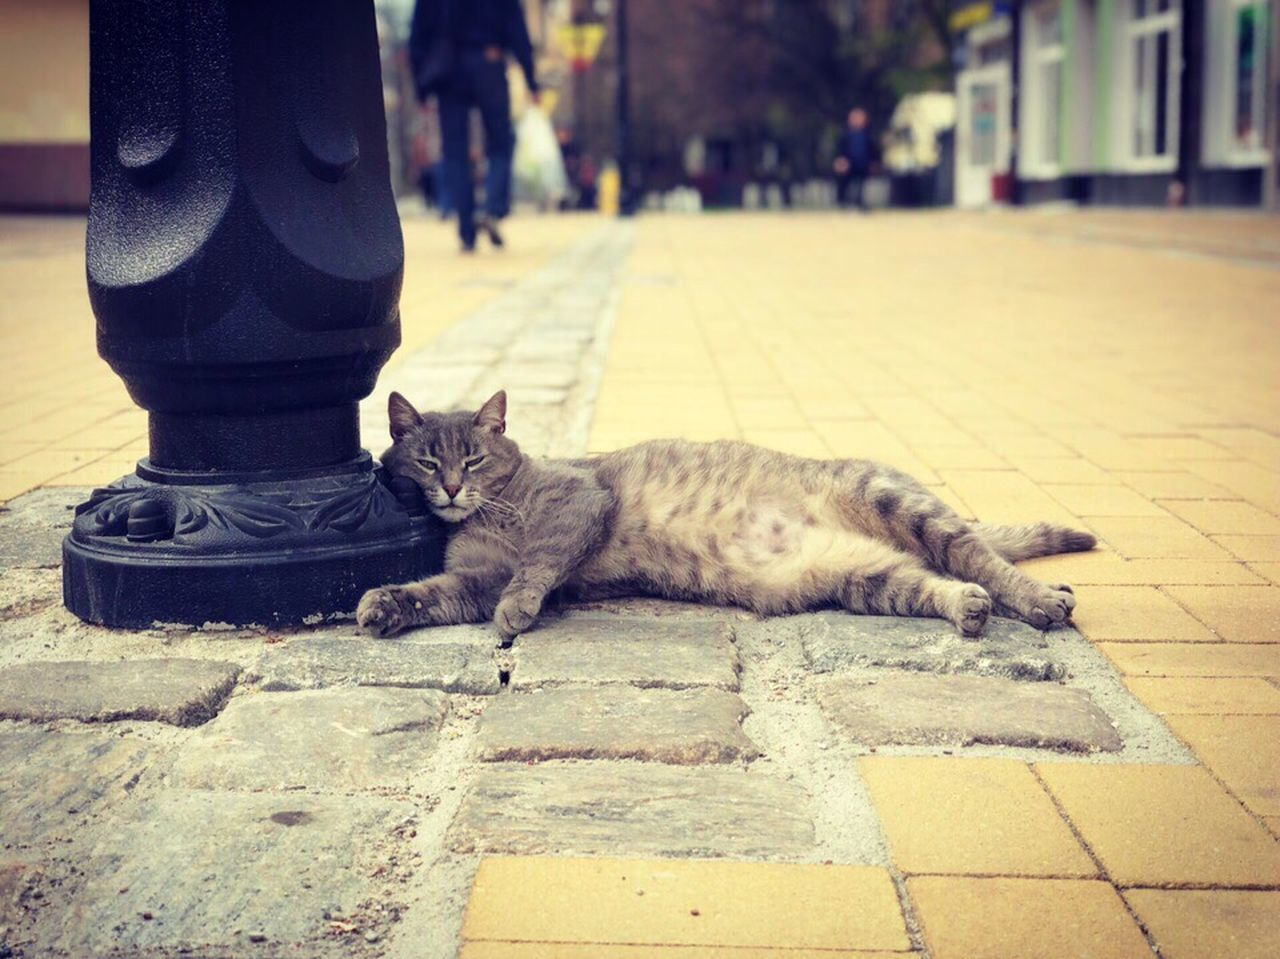 cat, domestic, feline, pets, domestic cat, mammal, domestic animals, one animal, footpath, vertebrate, relaxation, street, day, city, lying down, sidewalk, people, focus on foreground, outdoors, whisker, tabby